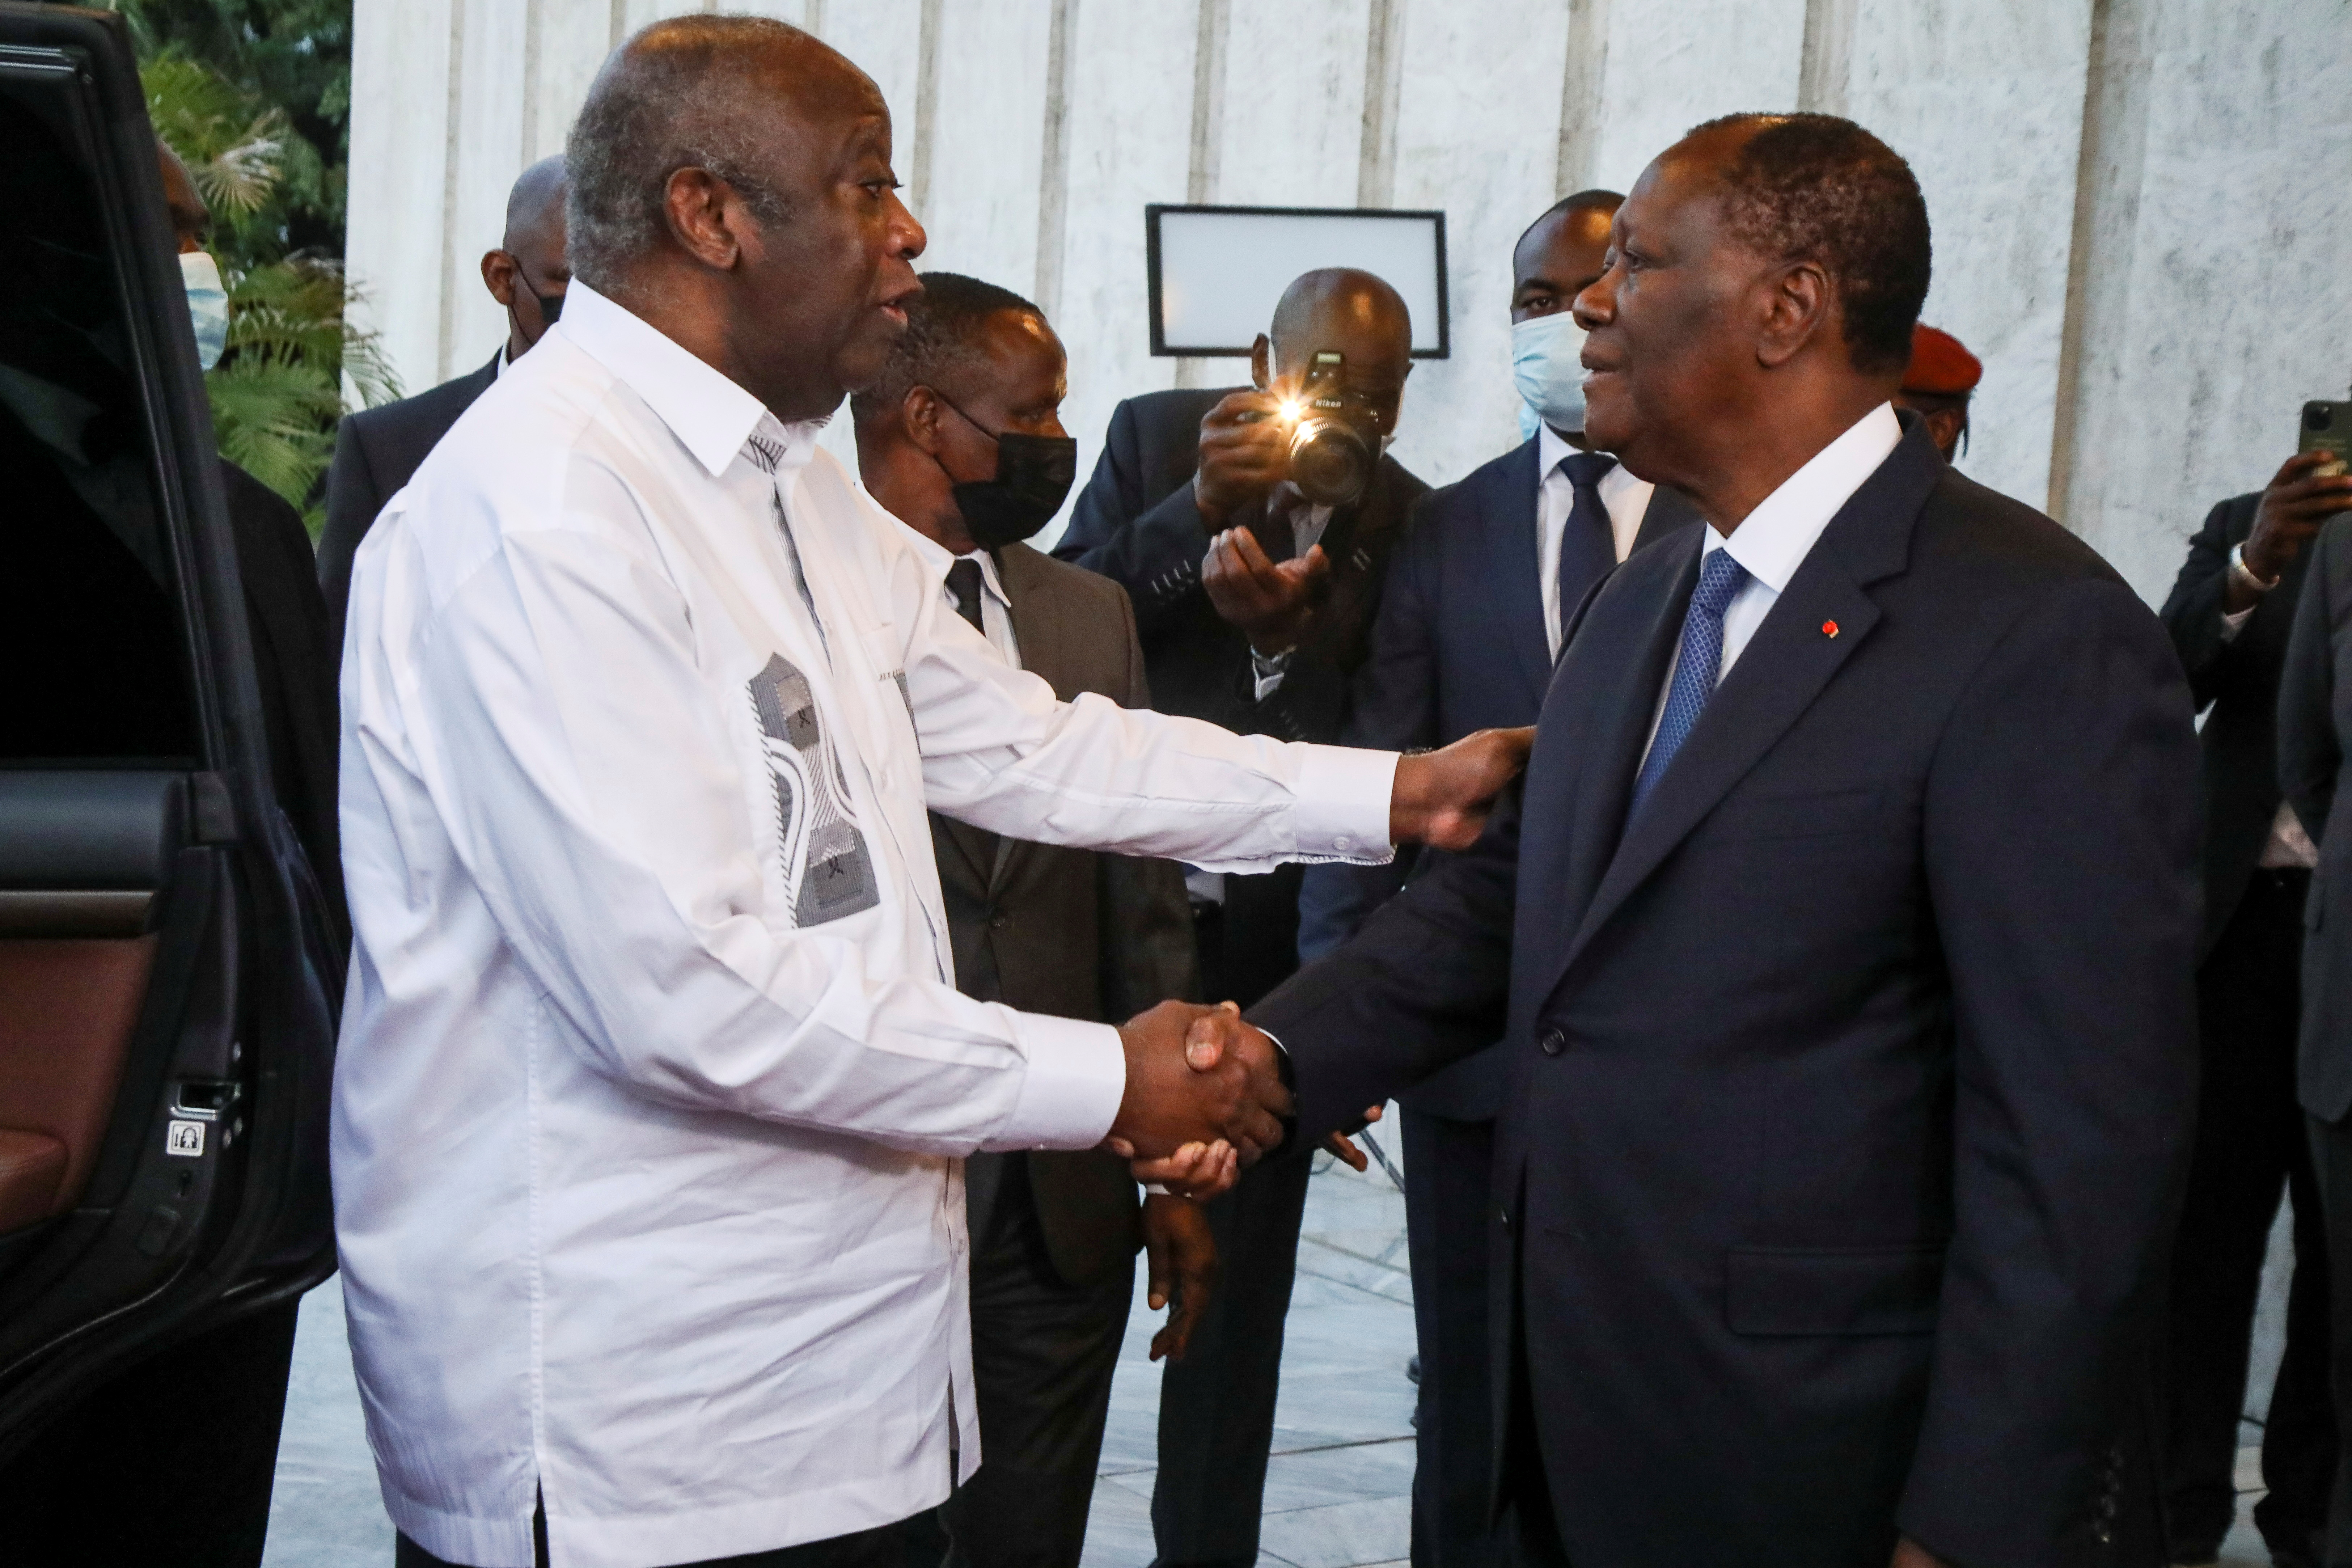 Ivory Coast's President Alassane Ouattara shakes hands with former Ivory Coast President Laurent Gbagbo during a meeting at the presidential palace in Abidjan, Ivory Coast July 27, 2021. REUTERS/Luc Gnago